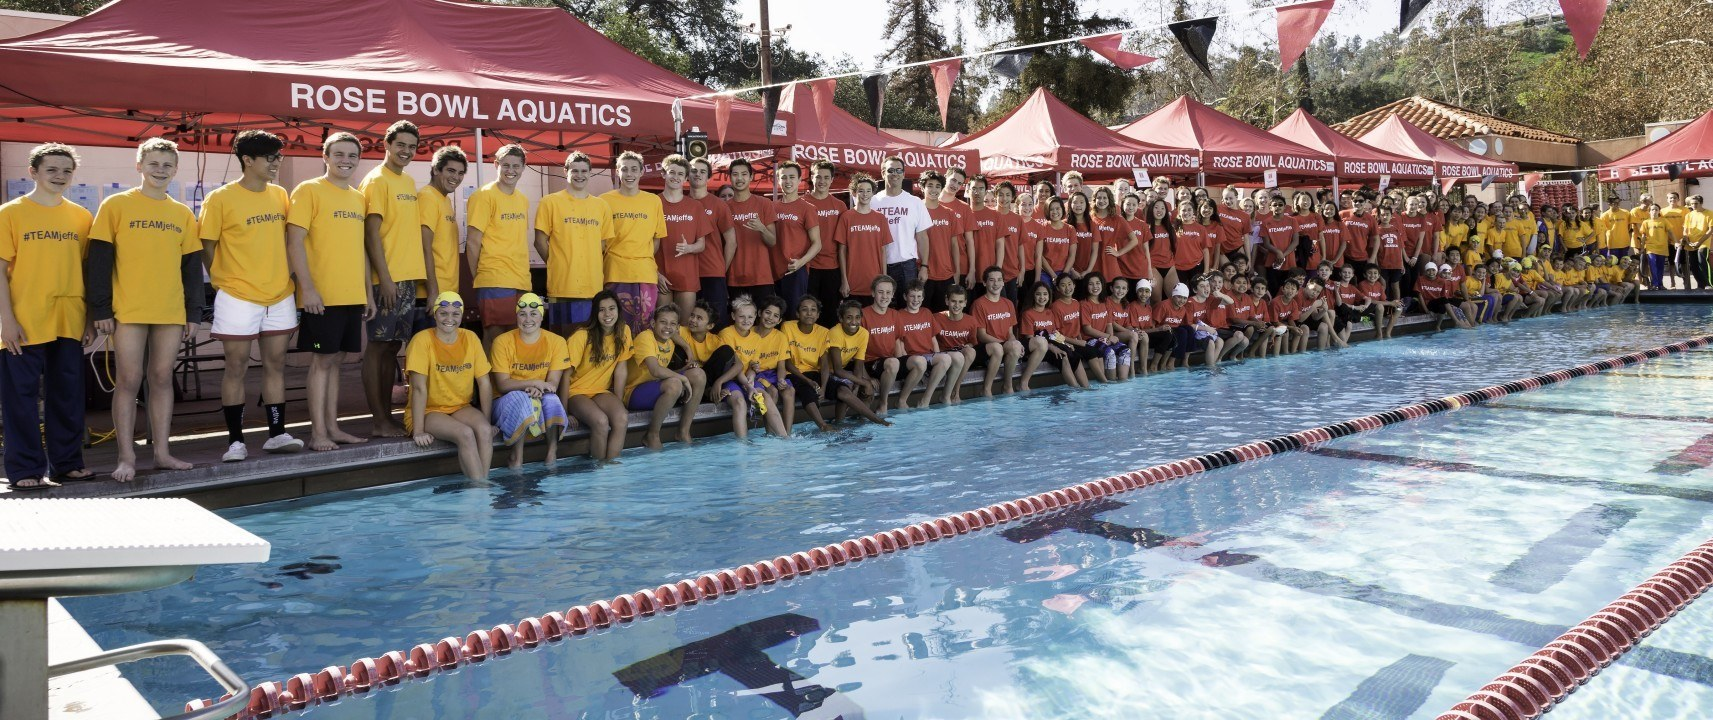 #TEAMJeff: Rose Bowl Aquatics rallies around coach with cancer, and you can too